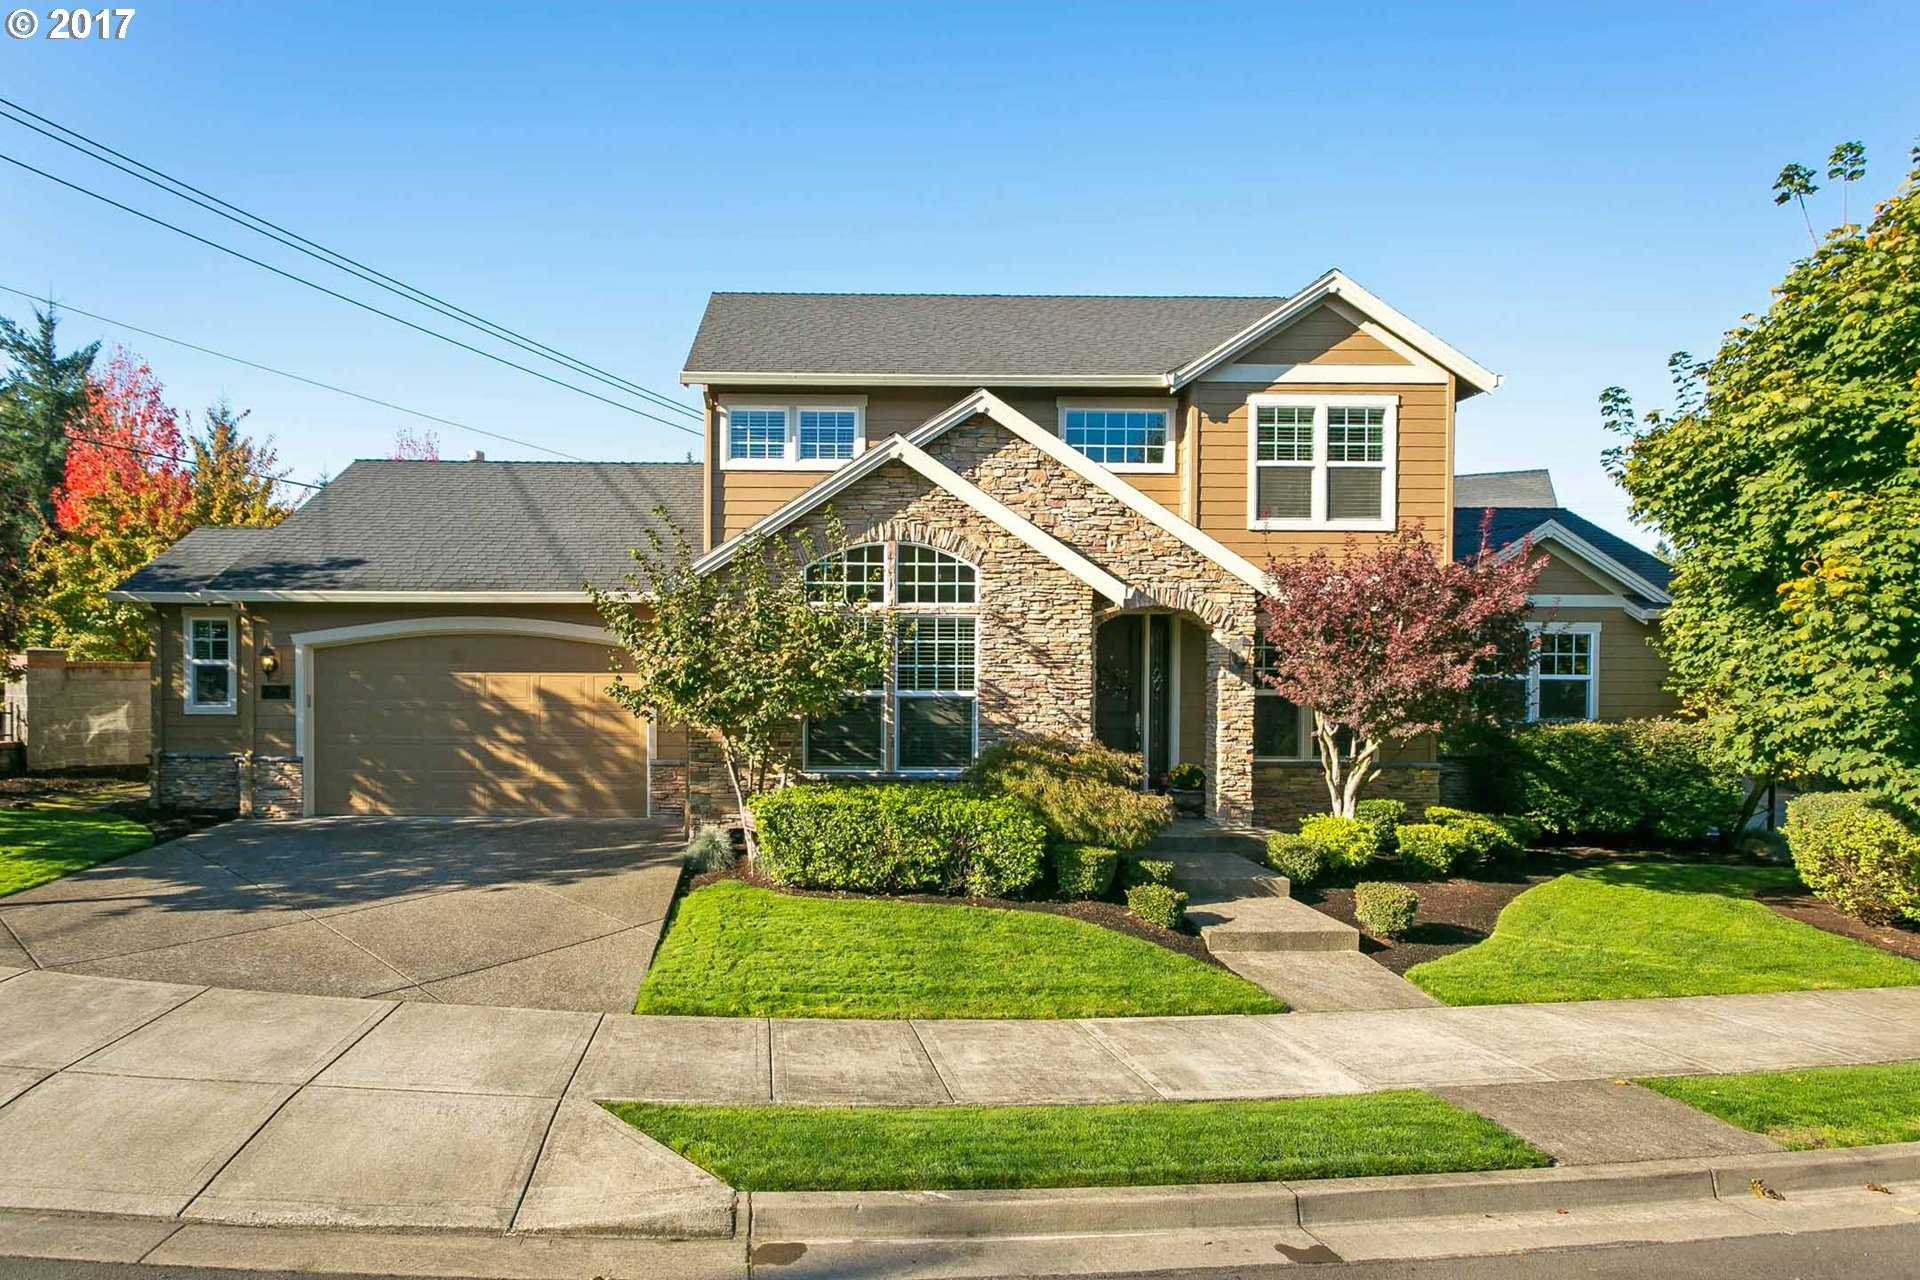 $650,000 - 4Br/3Ba -  for Sale in Tualatin